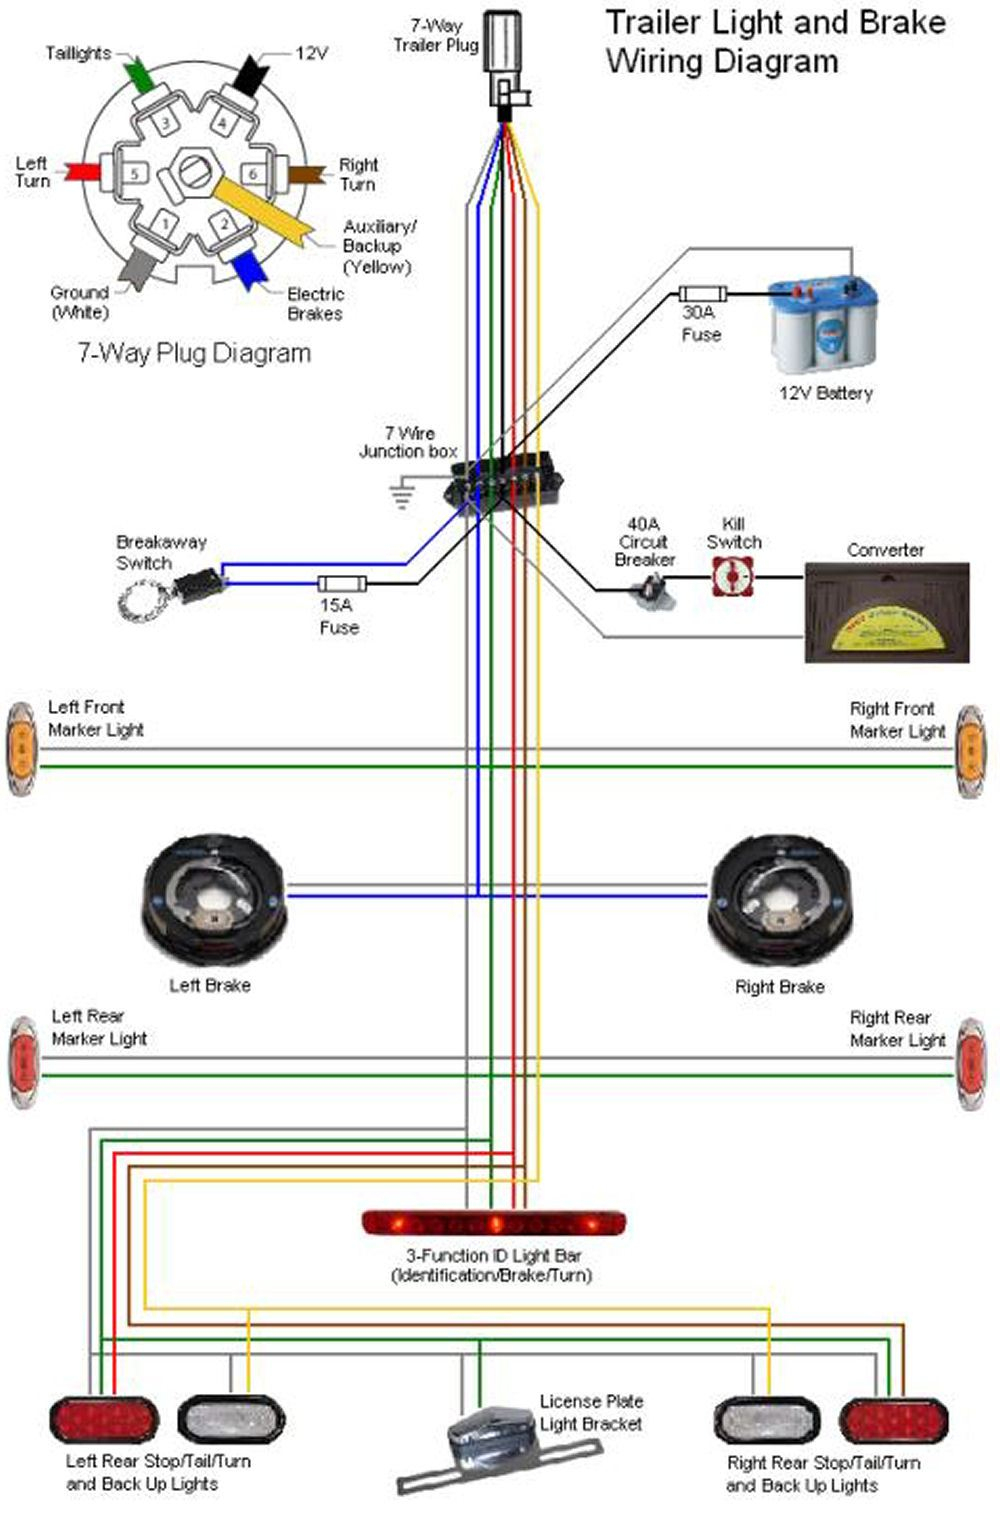 Wire Trailer Ke Wiring Diagram on 4 wire trailer lighting, 4 wire electrical diagram, 4 wire trailer hitch diagram, wilson trailer parts diagram, 3 wire circuit diagram, 4 wire trailer brake,